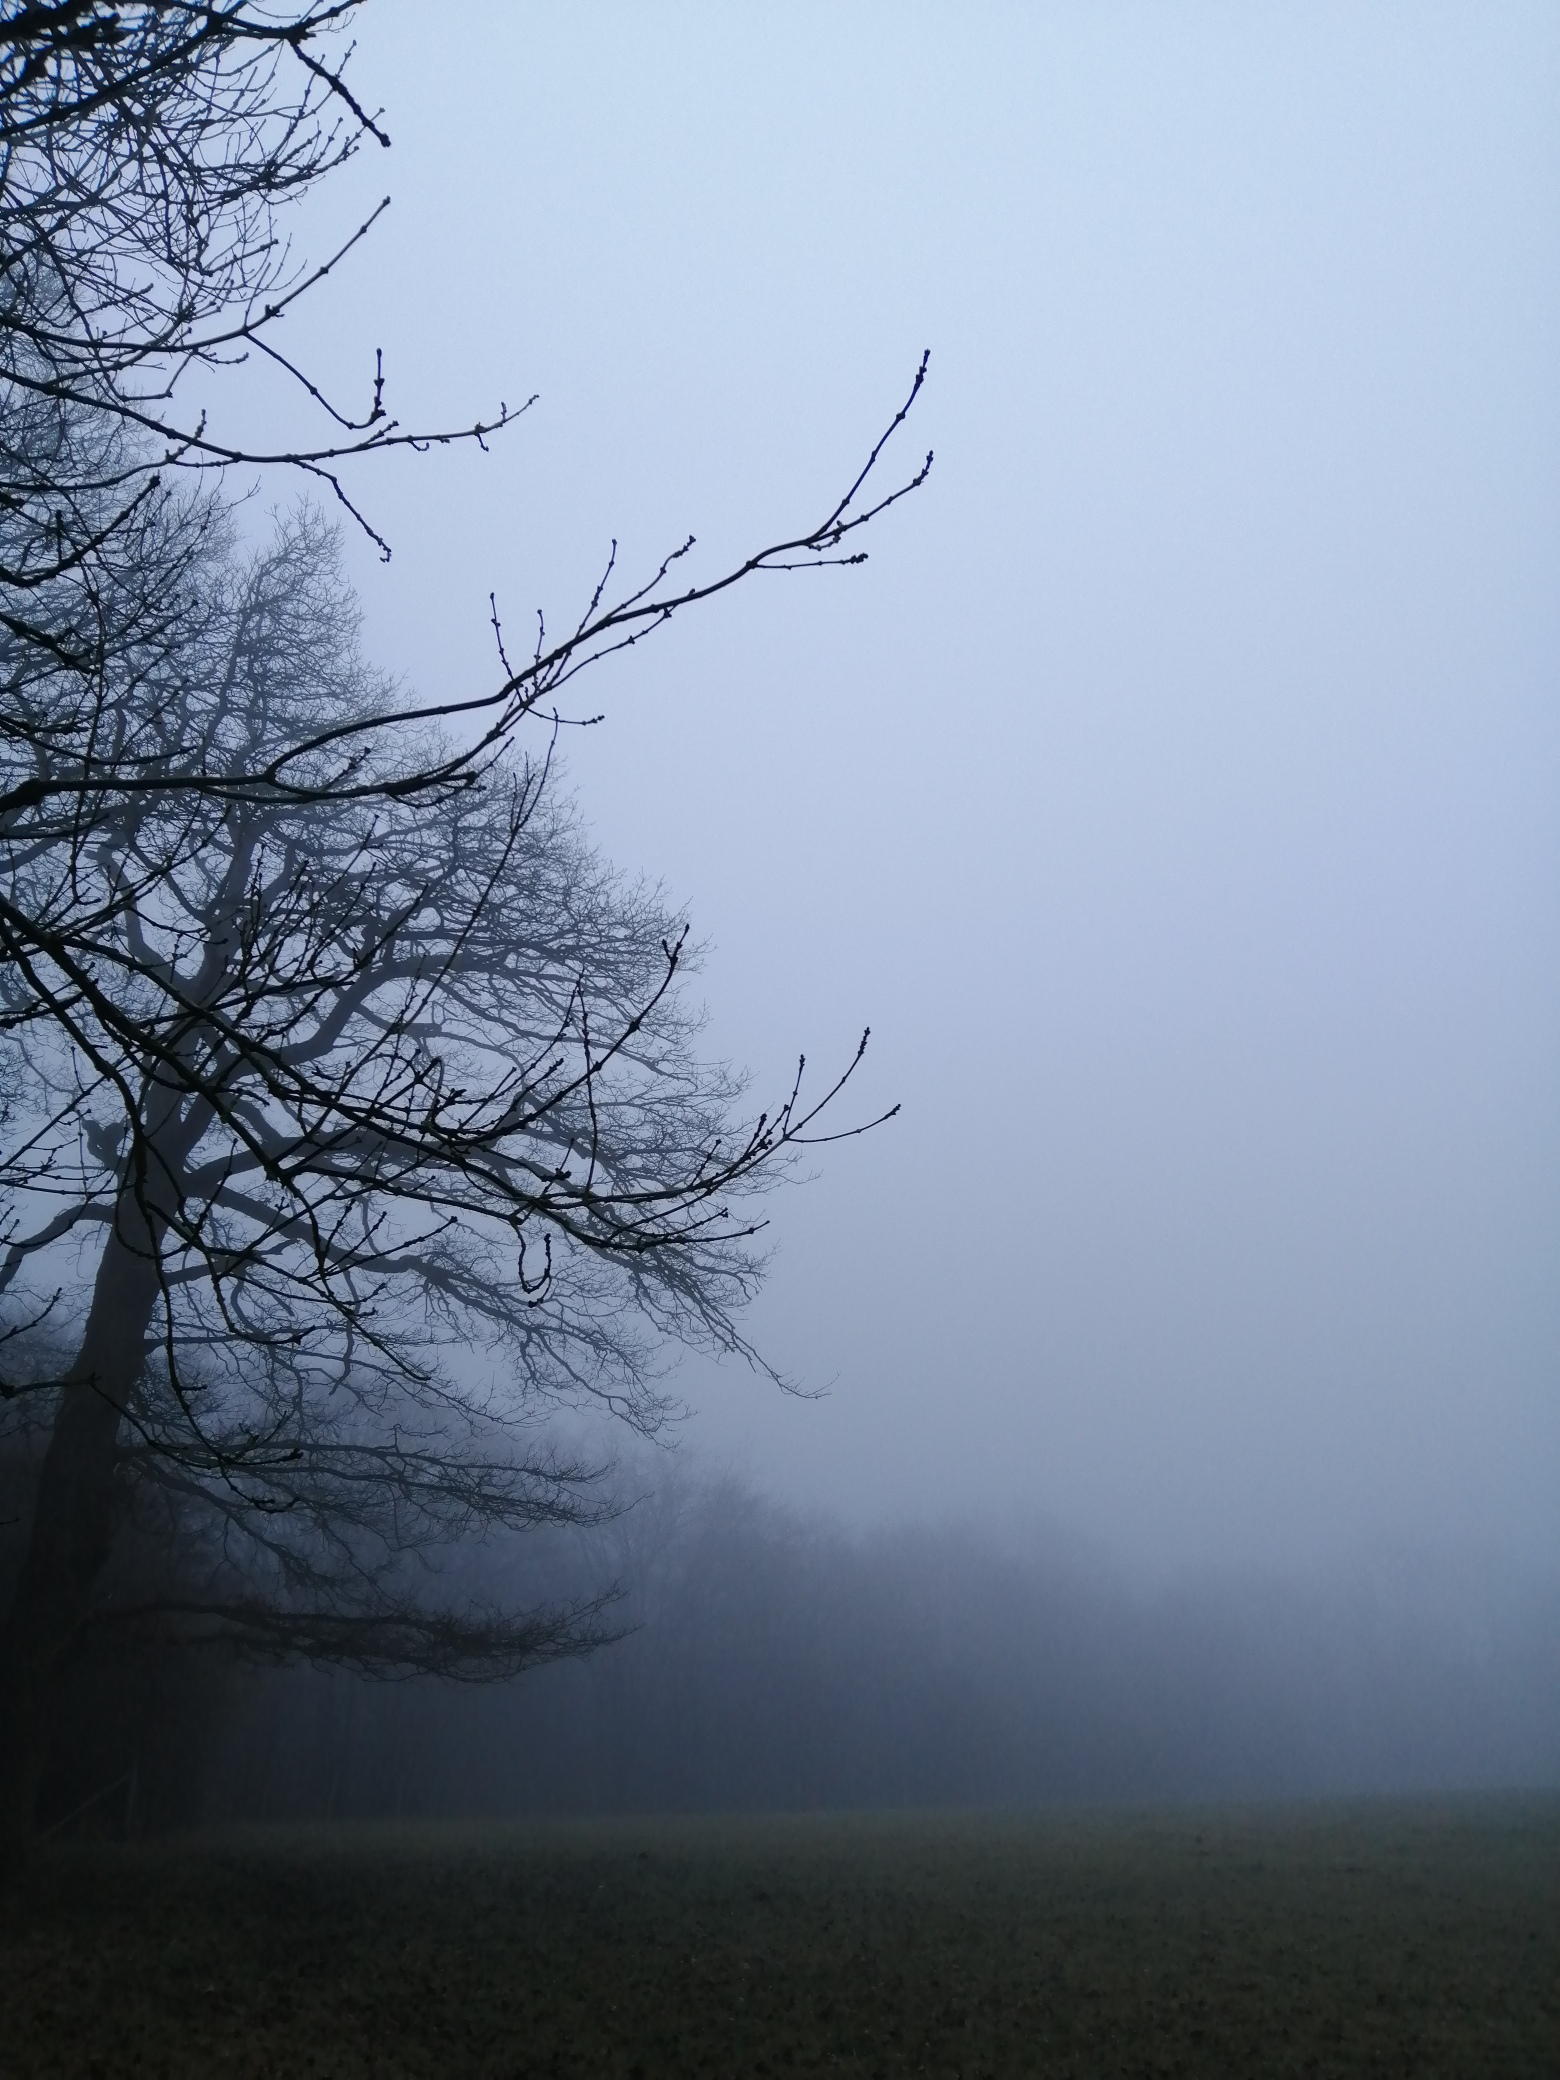 March mist, unclear way ahead